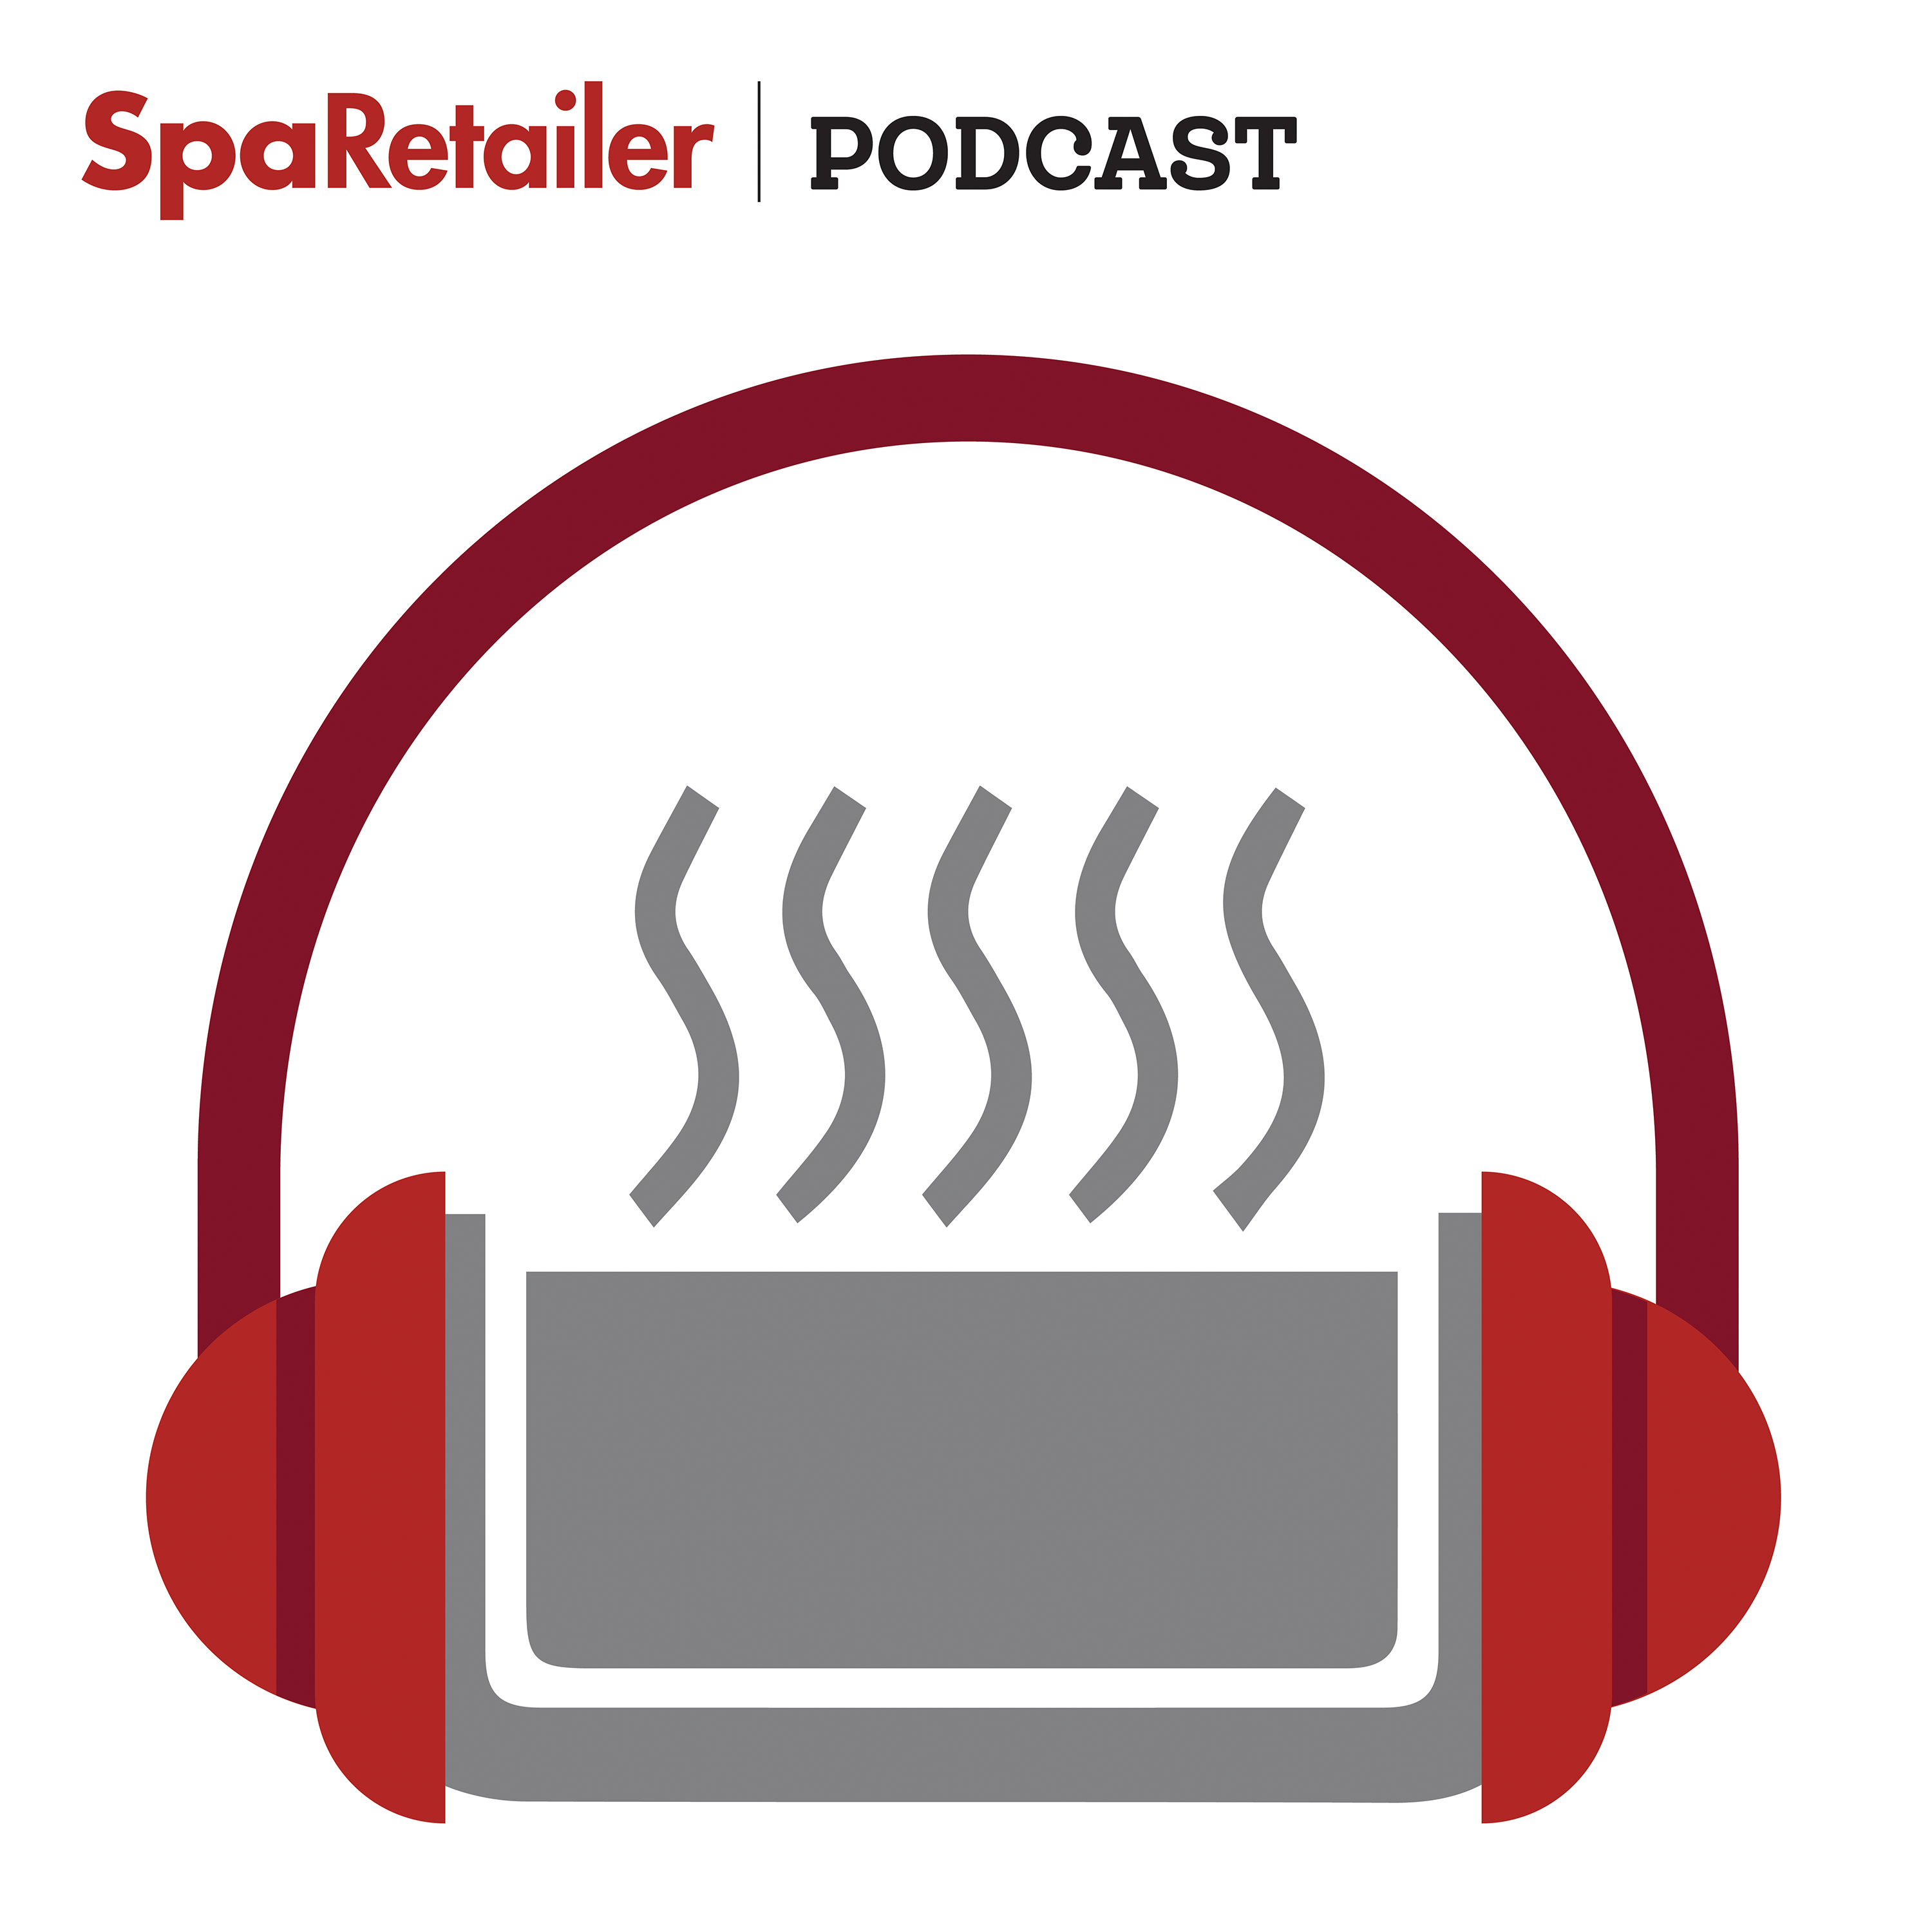 The SpaRetailer Podcast